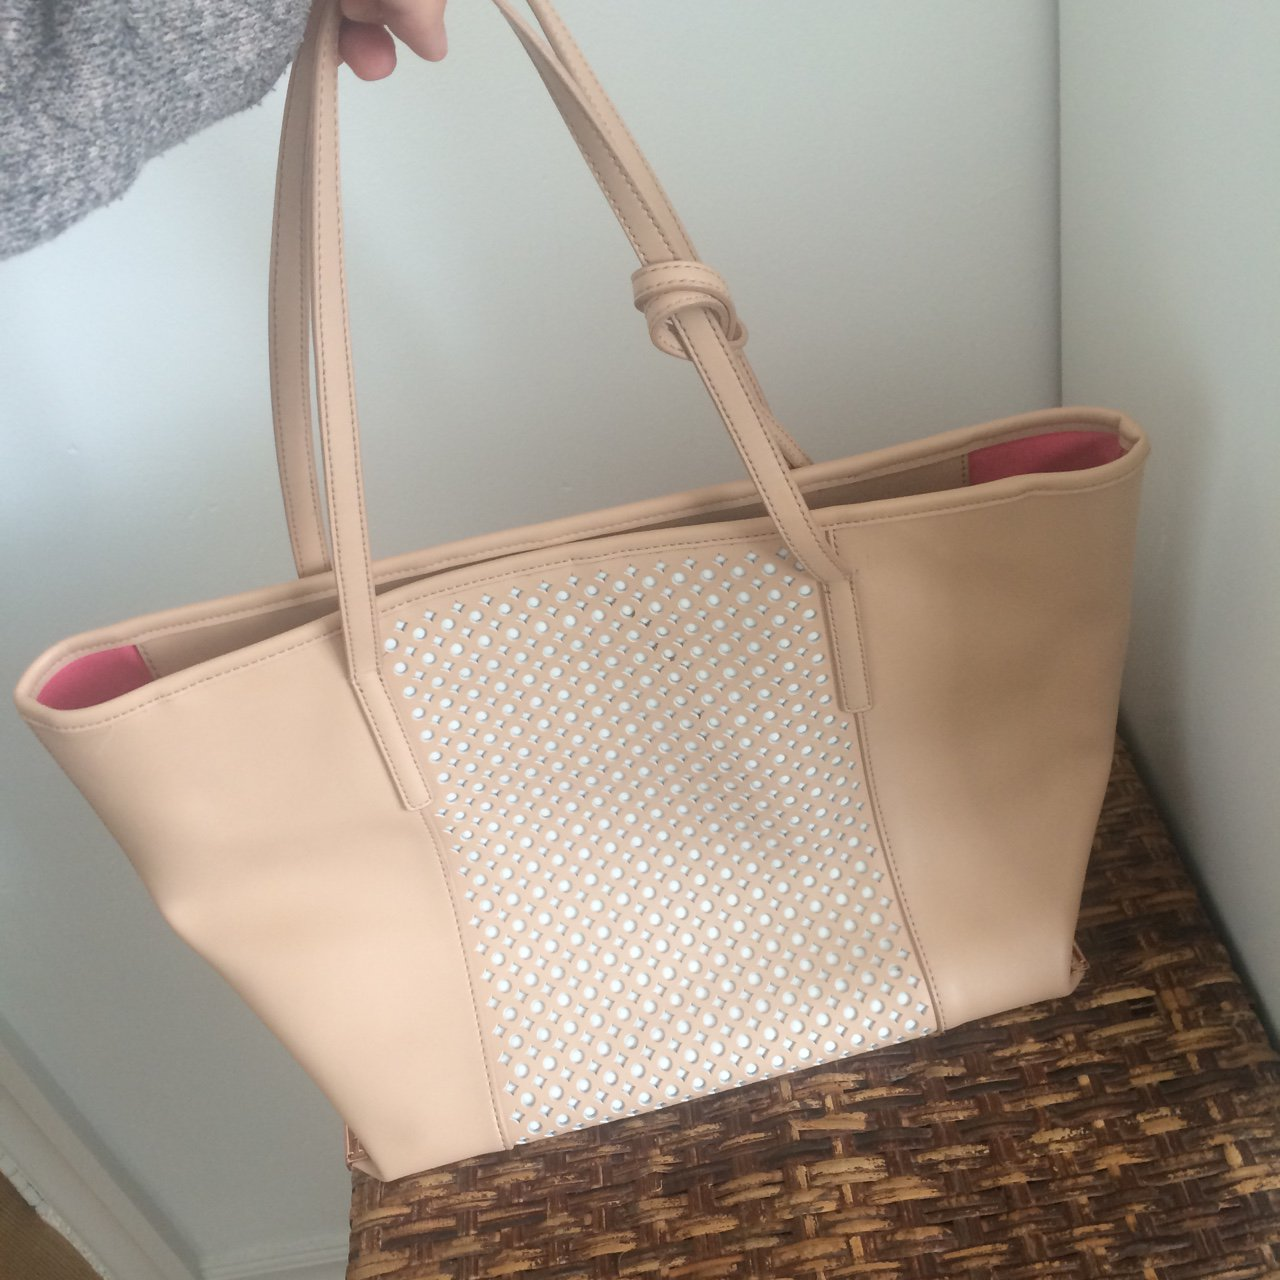 d1db751010 REDUCED!! TED BAKER tote bag - nude pink and white large use - Depop